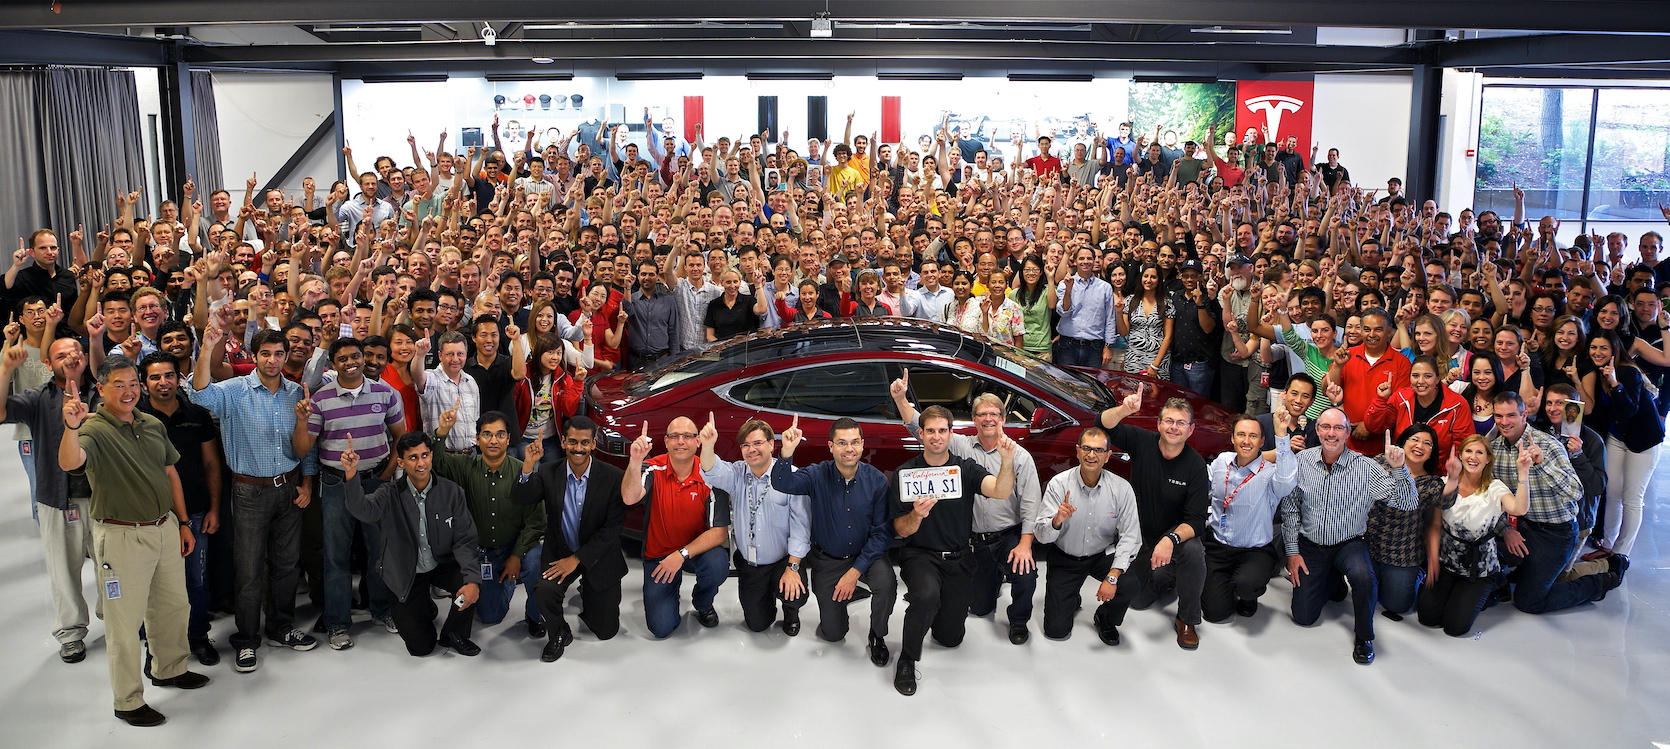 2012-06-01-tesla-headquarters-group-photo-s1